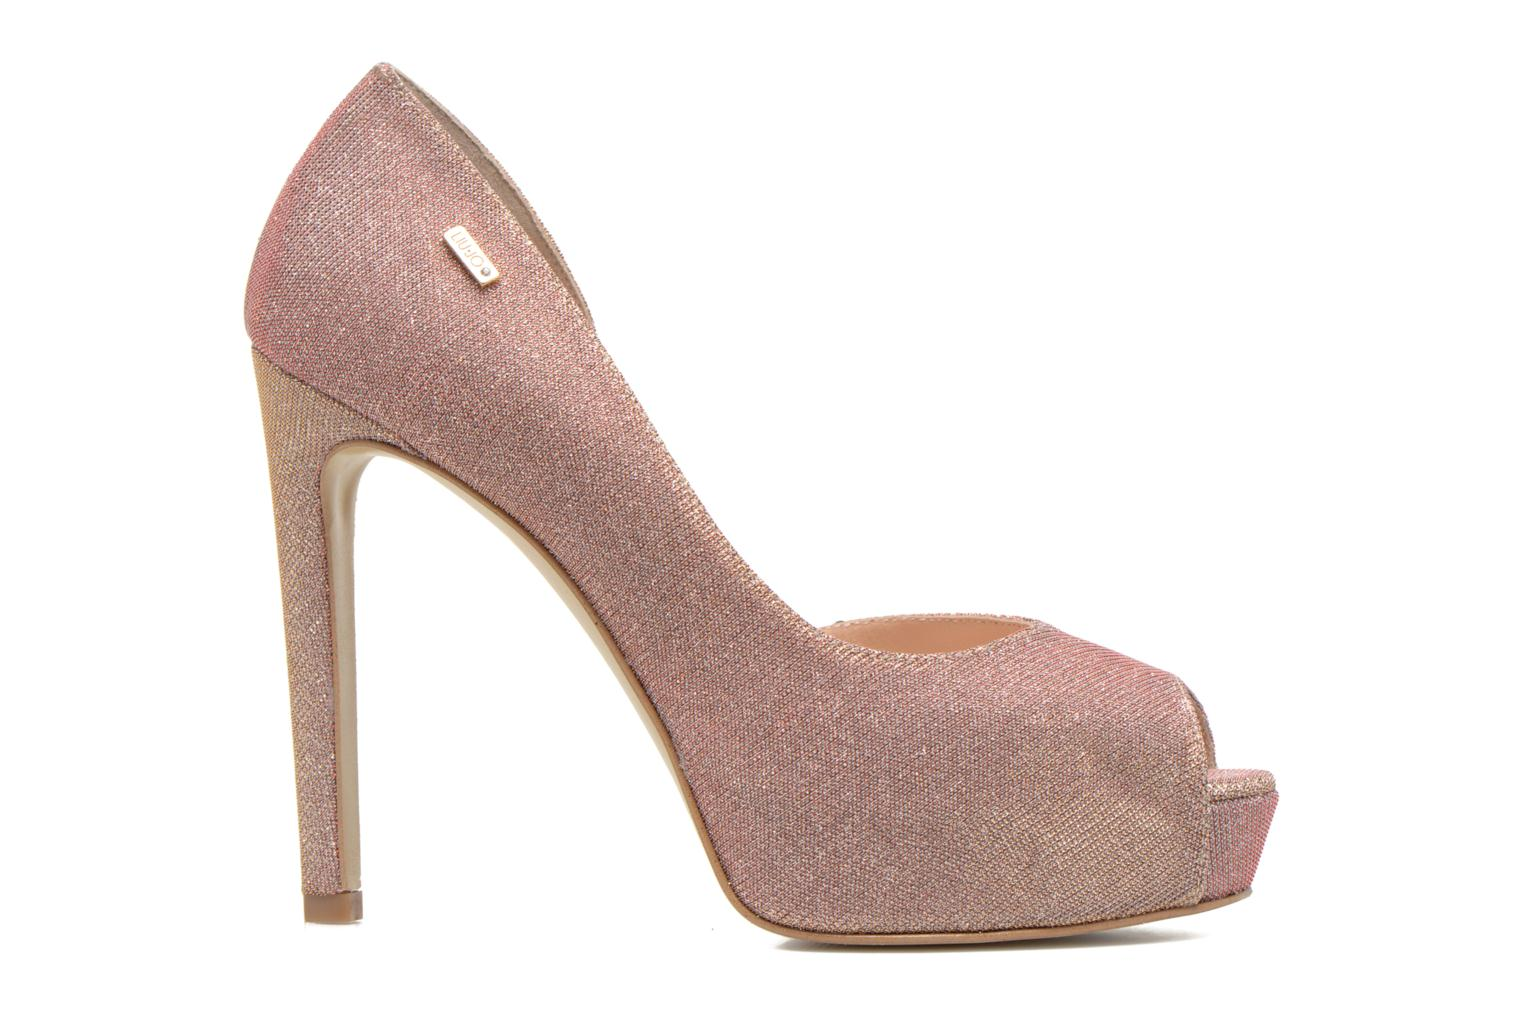 Marise Open toe Rose metallisé